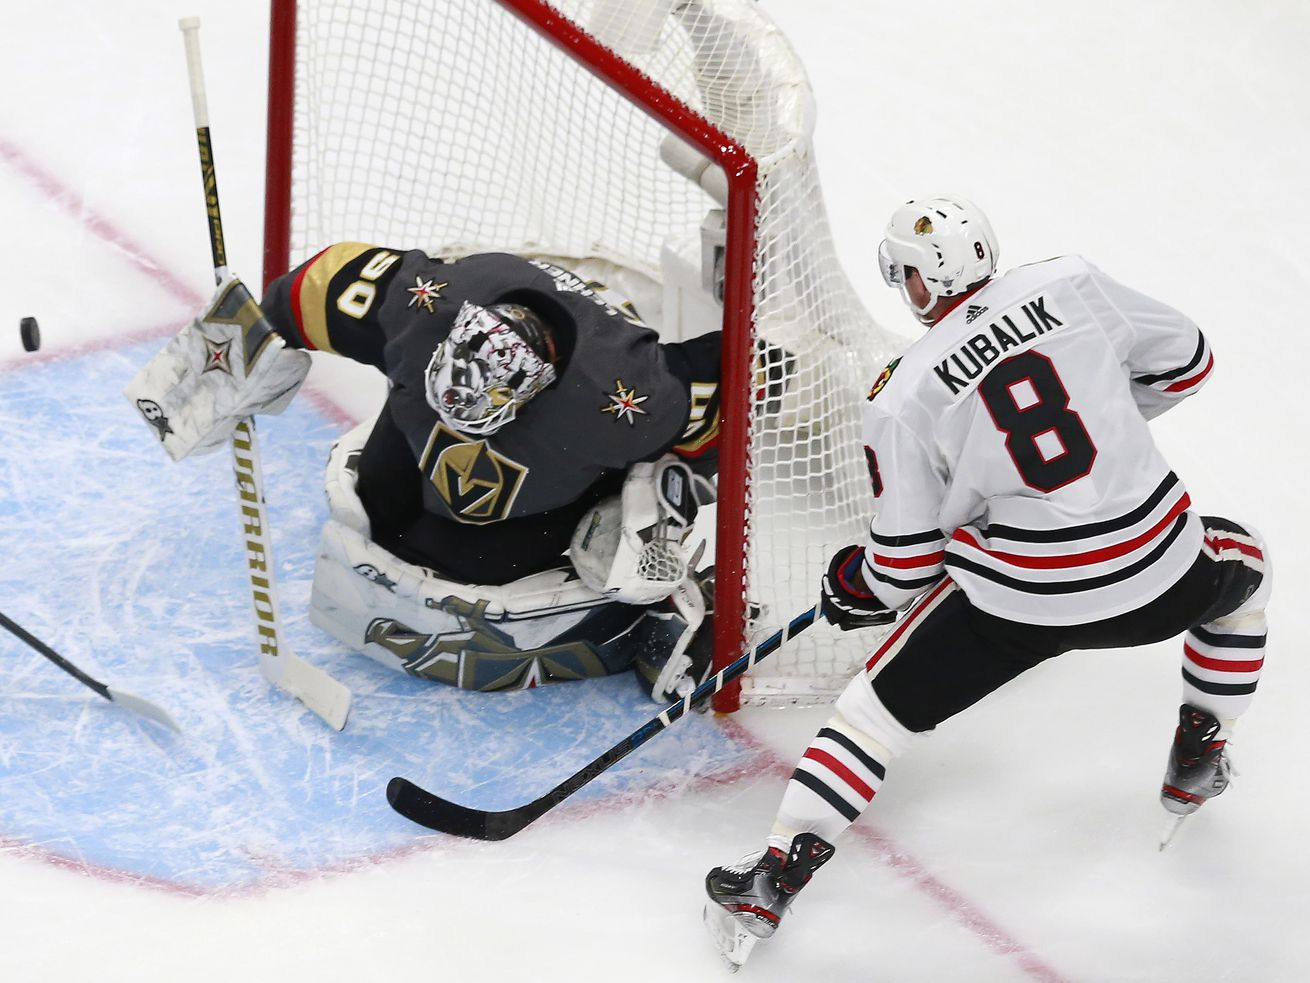 Blackhawks want to push structure into offensive zone in Game 2 vs. Golden Knights